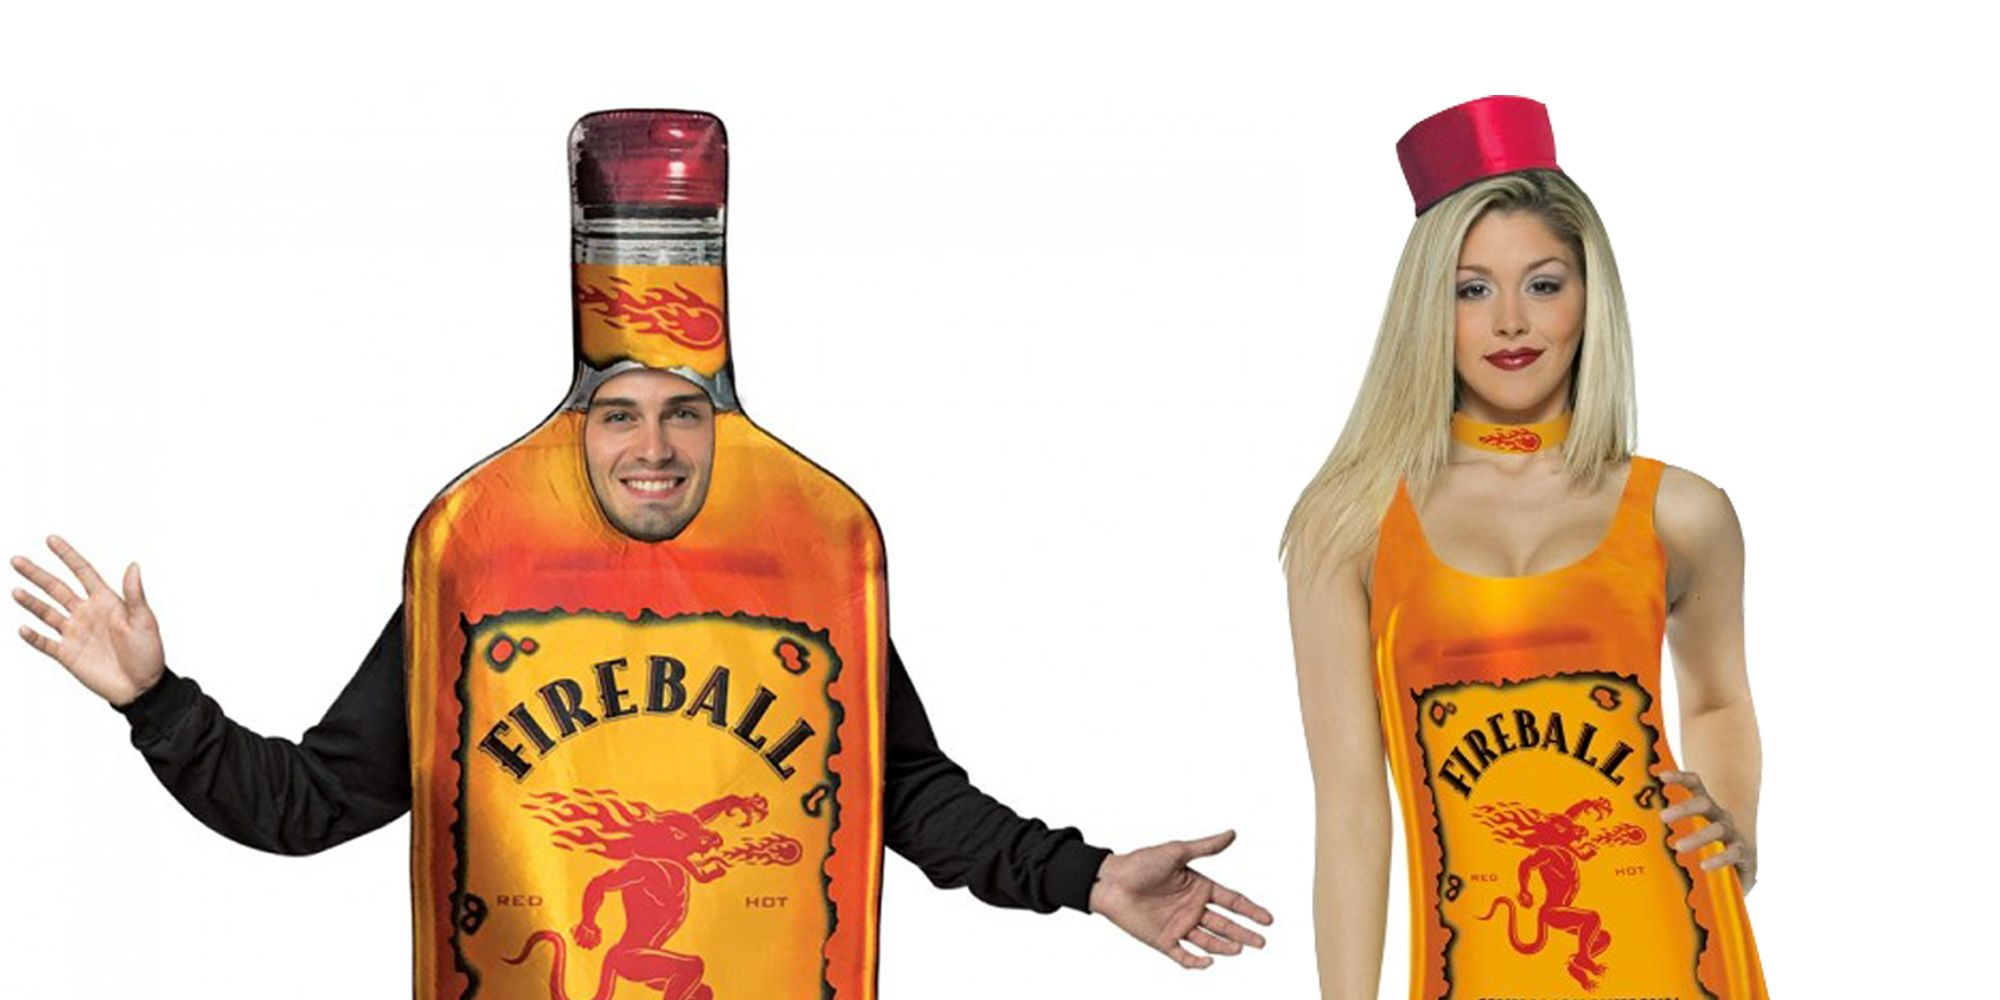 You Can Be A Sexy Fireball Bottle For Halloween This Year - Fireball Halloween Costume - Delish.com  sc 1 st  Delish.com & You Can Be A Sexy Fireball Bottle For Halloween This Year - Fireball ...